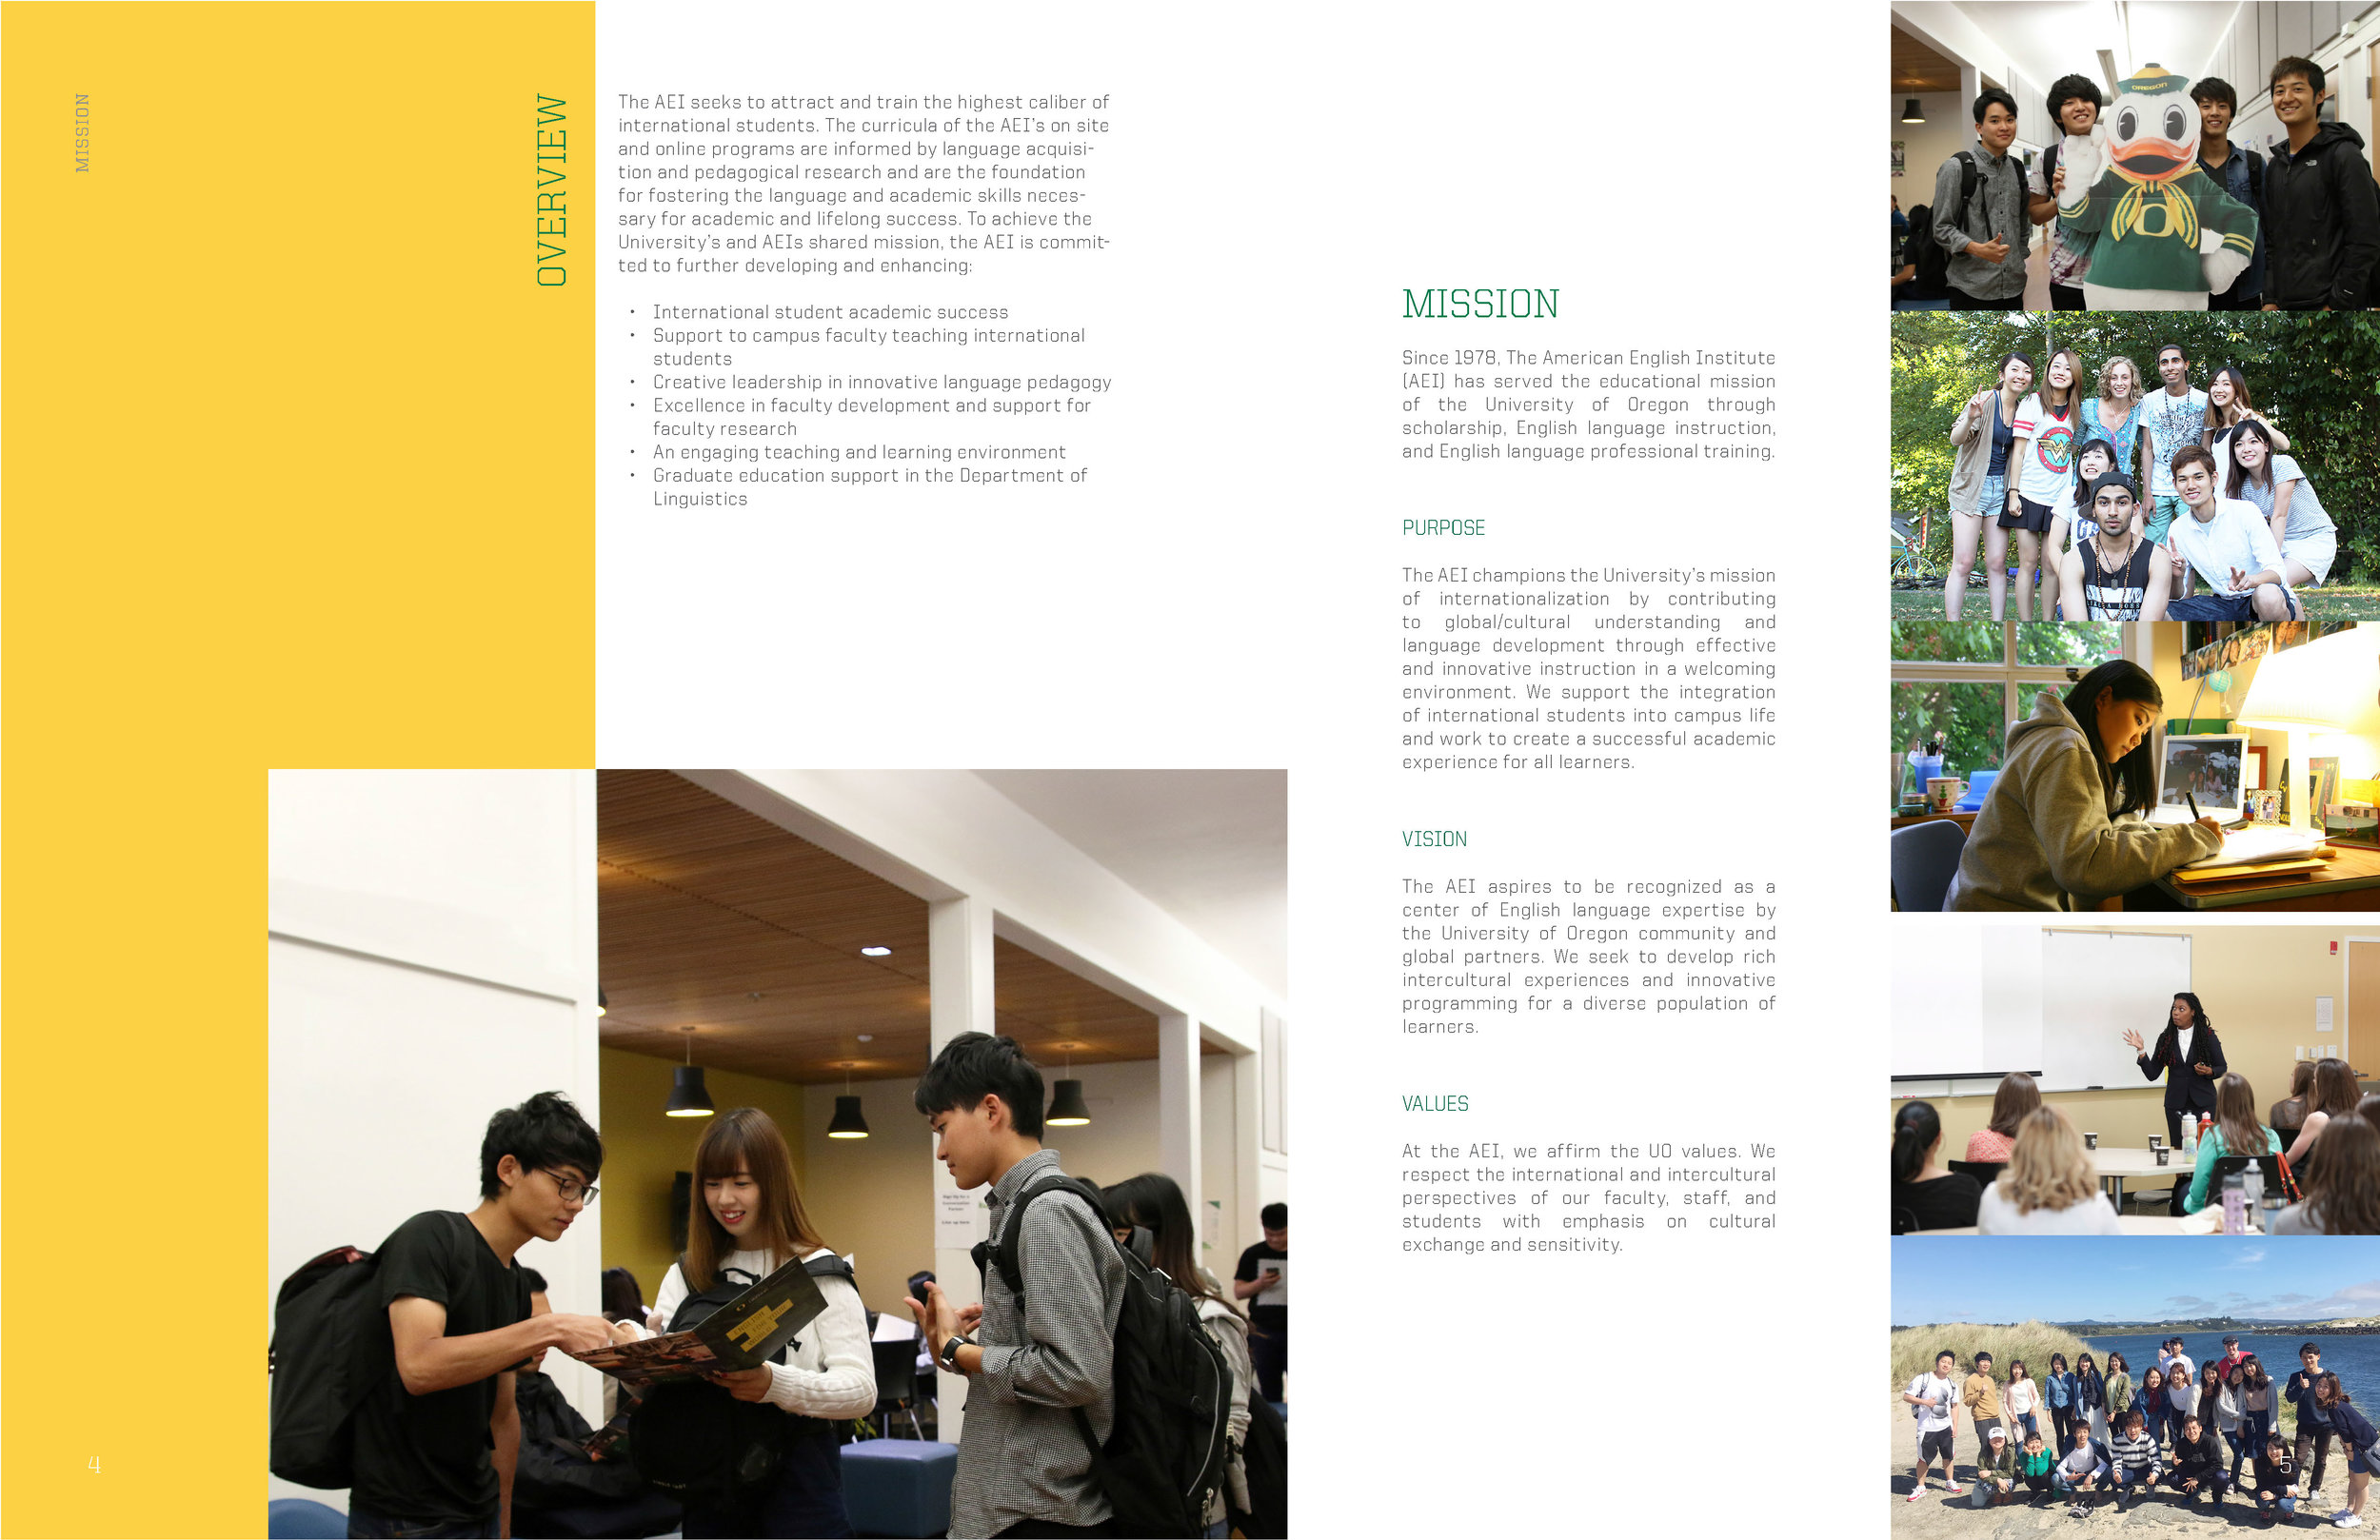 AEI Annual Report spreads_Page_03.jpg